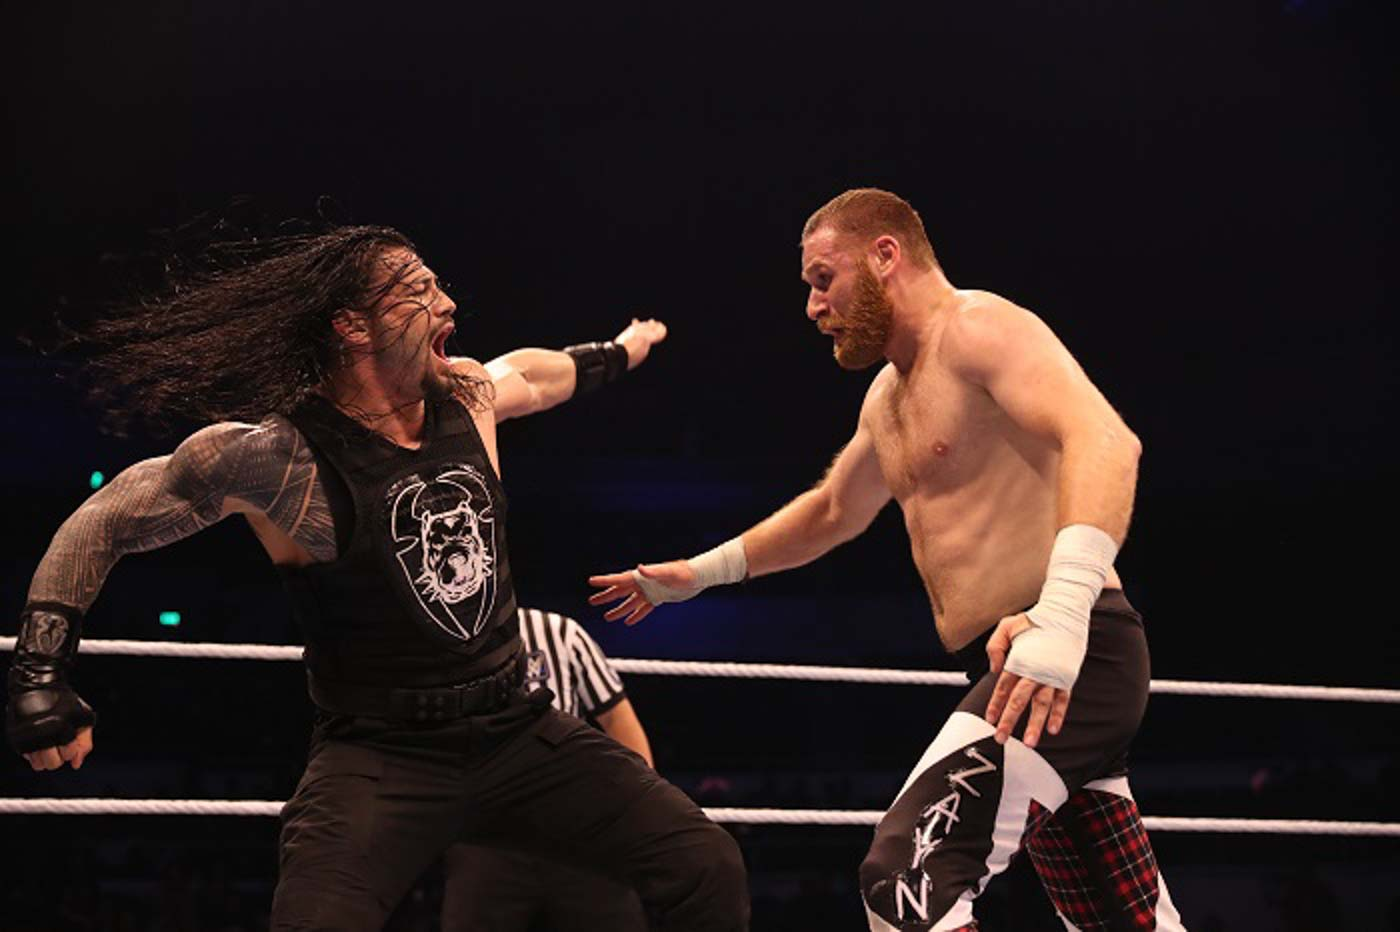 ACTION-PACKED. Roman Reigns defeats Sami Zayn in the open challenge. Photo from release